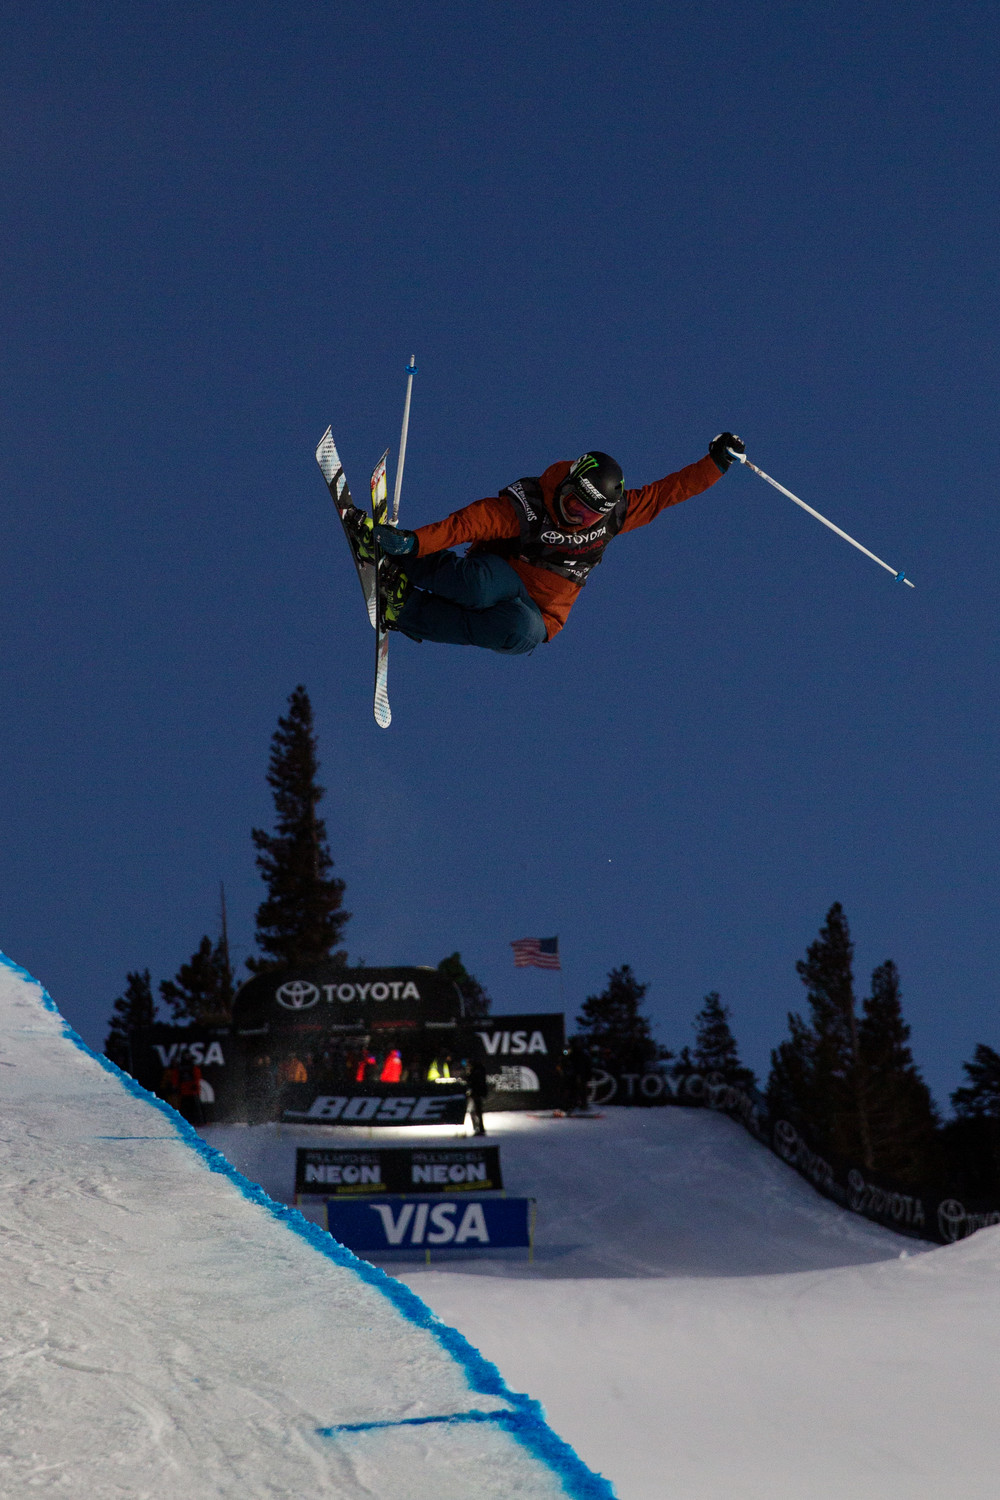 U.S. Olympic women's slopestyle skier Devin Logan caught some air last month at the 2018 Mammoth Grand Prix in California. The Oceanside and Baldwin native is competing this week at the 2018 Winter Olympics.